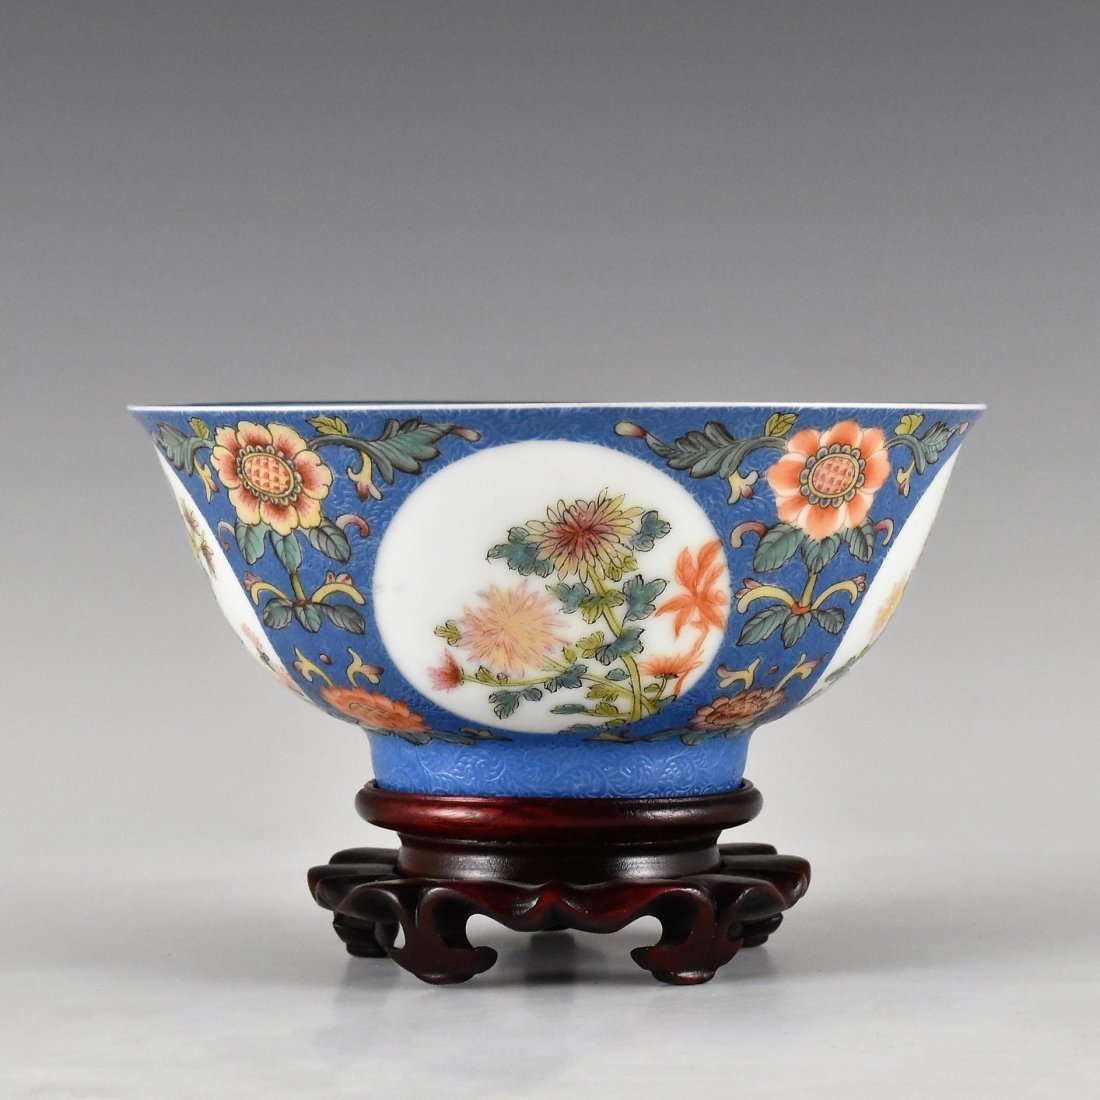 SGRAFFITO FLORAL MEDALLION BOWL ON STAND